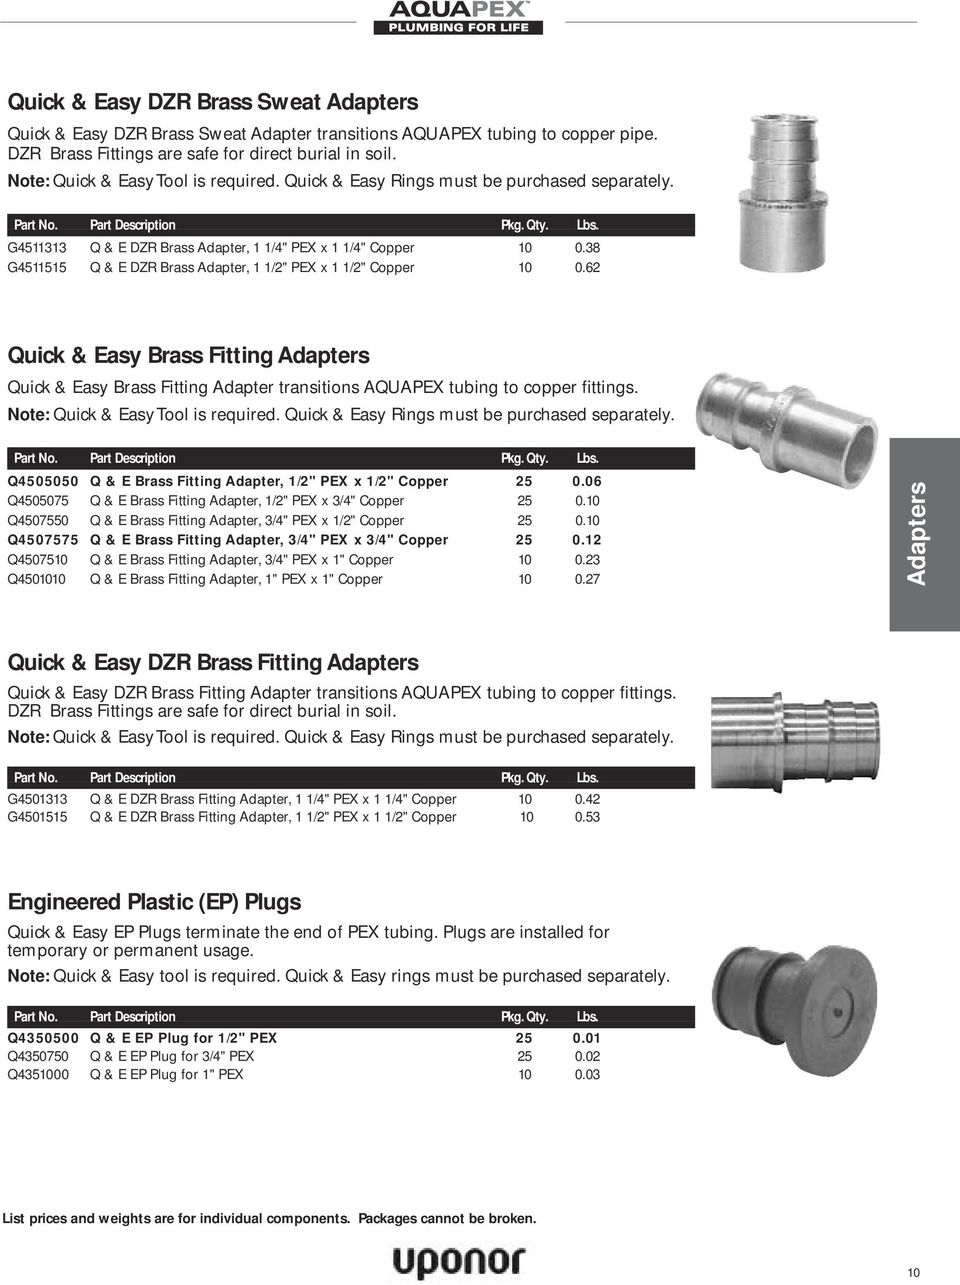 "62 Quick & Easy Brass Fitting Adapters Quick & Easy Brass Fitting Adapter transitions AQUAPEX tubing to copper fittings. Q4505050 Q & E Brass Fitting Adapter, 1/2"" PEX x 1/2"" Copper 25 0."